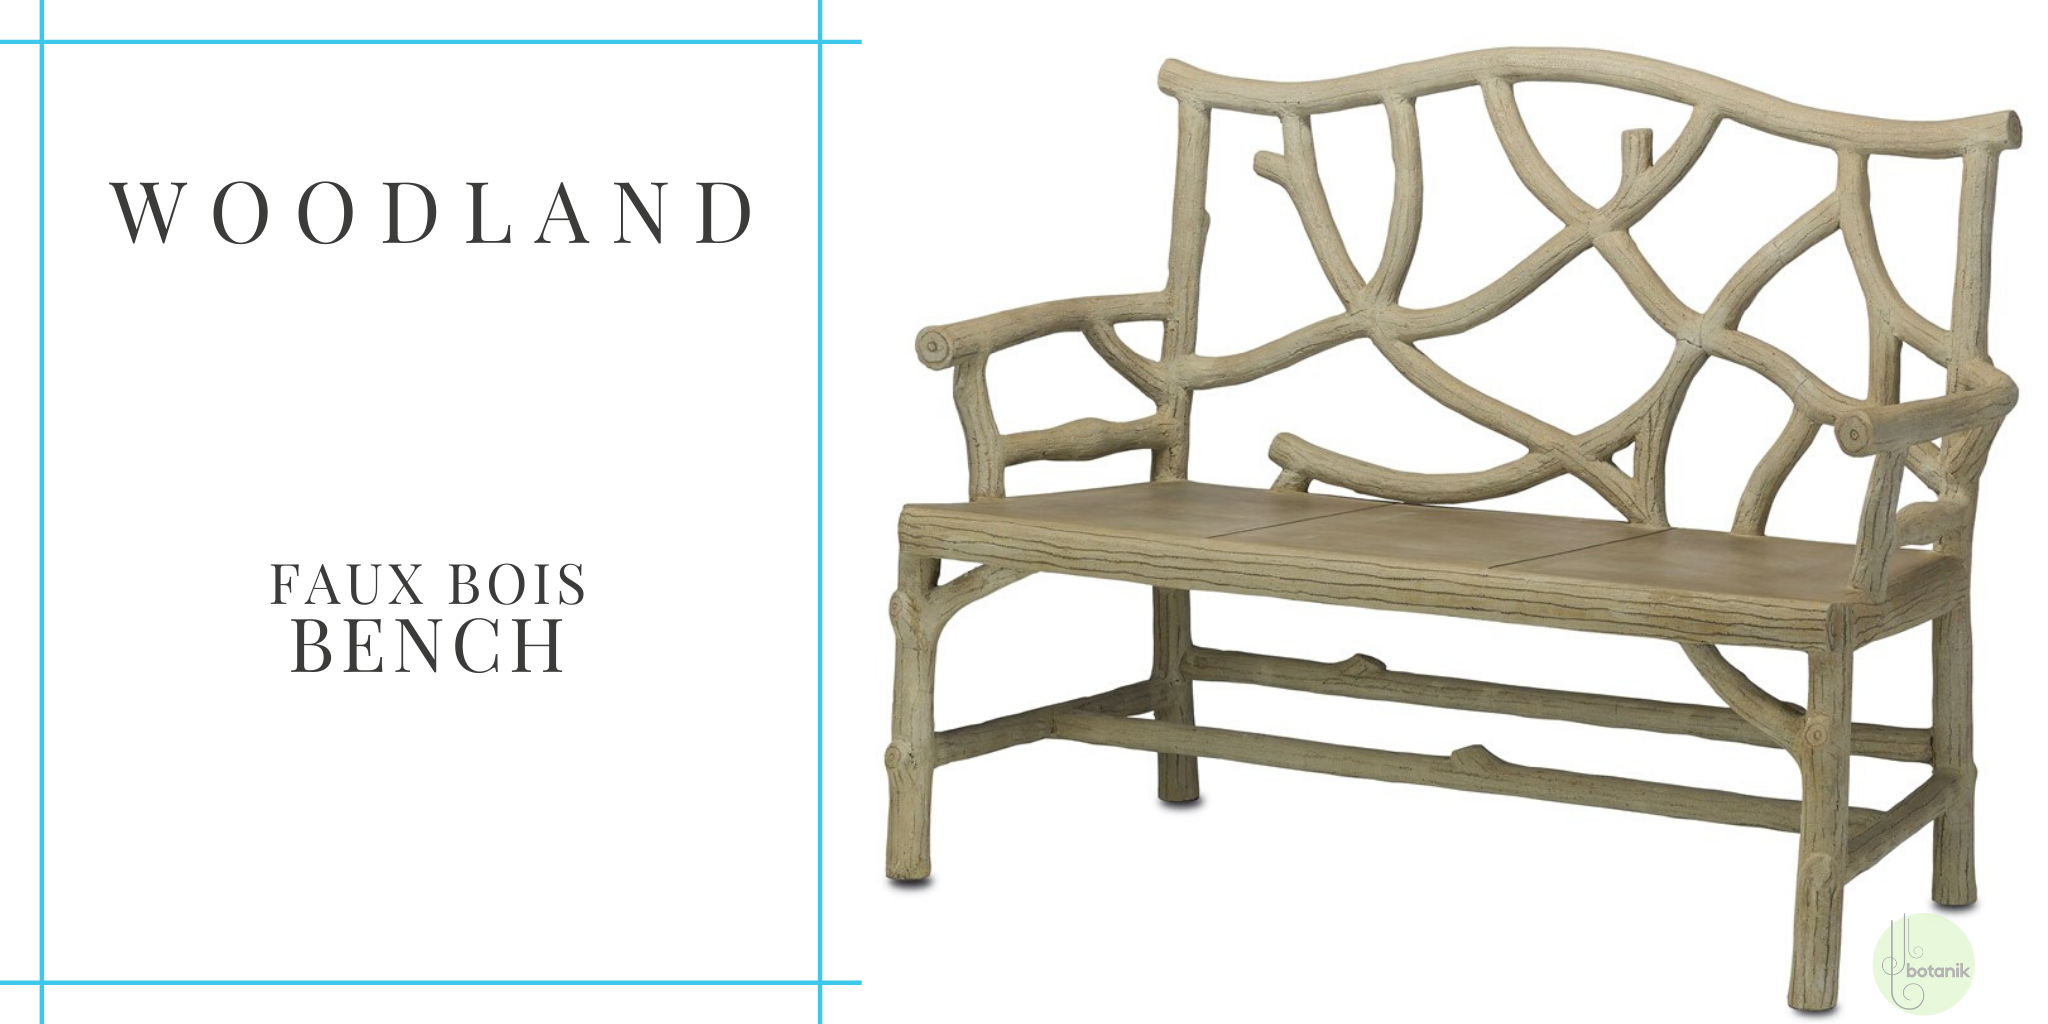 woodland-faux-bois-bench-from currey